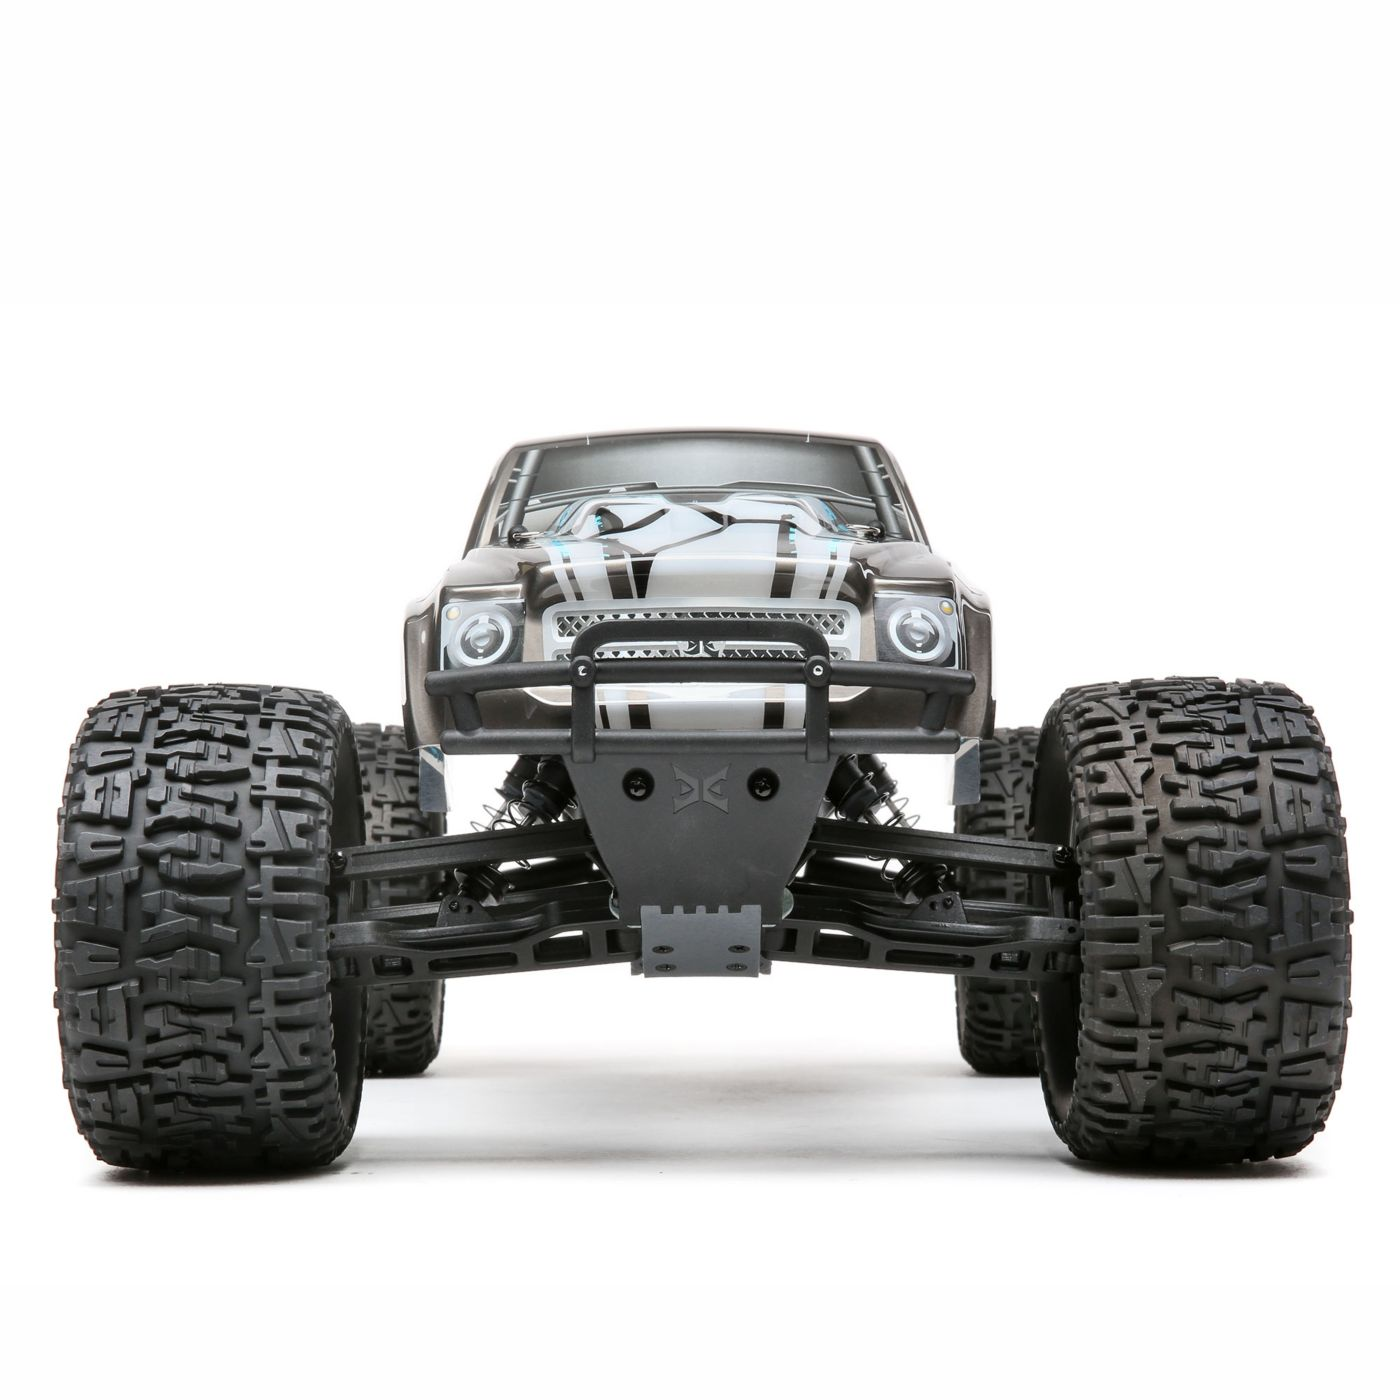 ECX Ruckus RC Monster Truck - Front